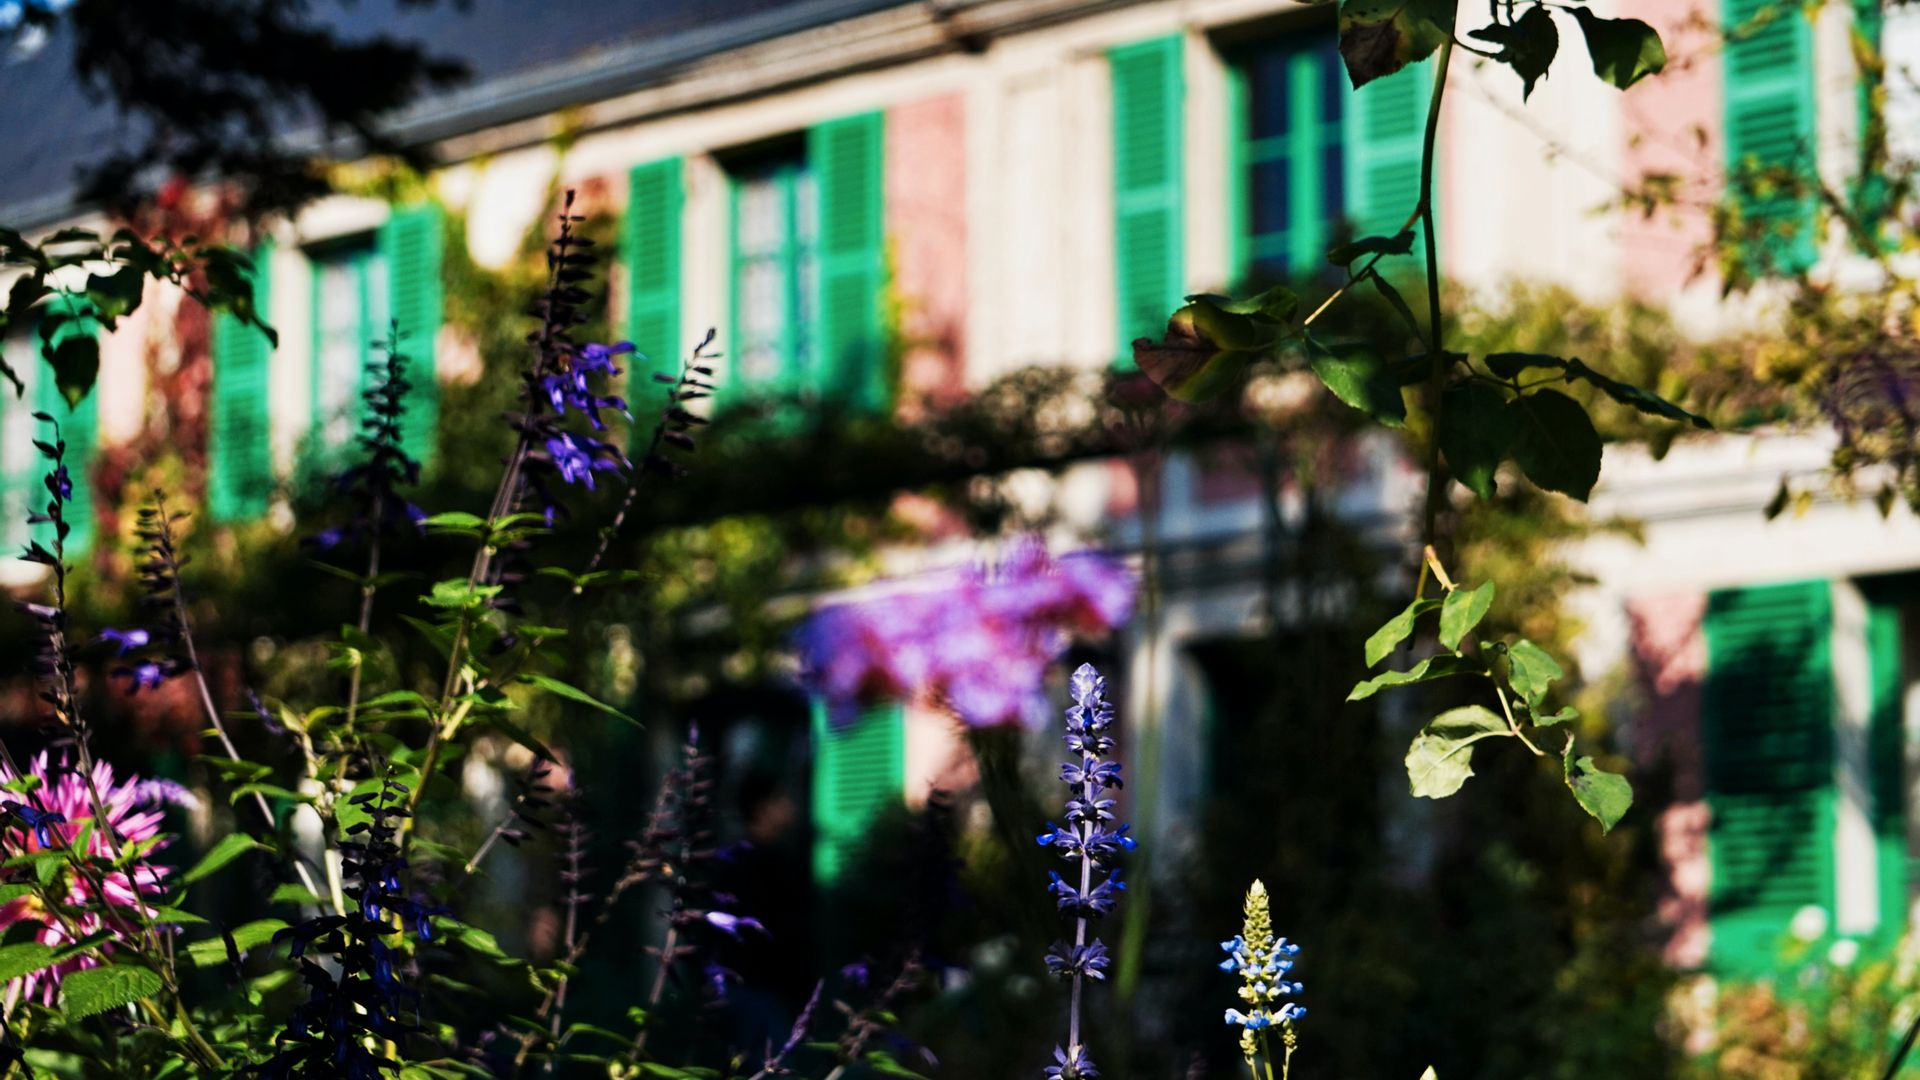 Fondation Claude Monet, Giverny, Normandie - France